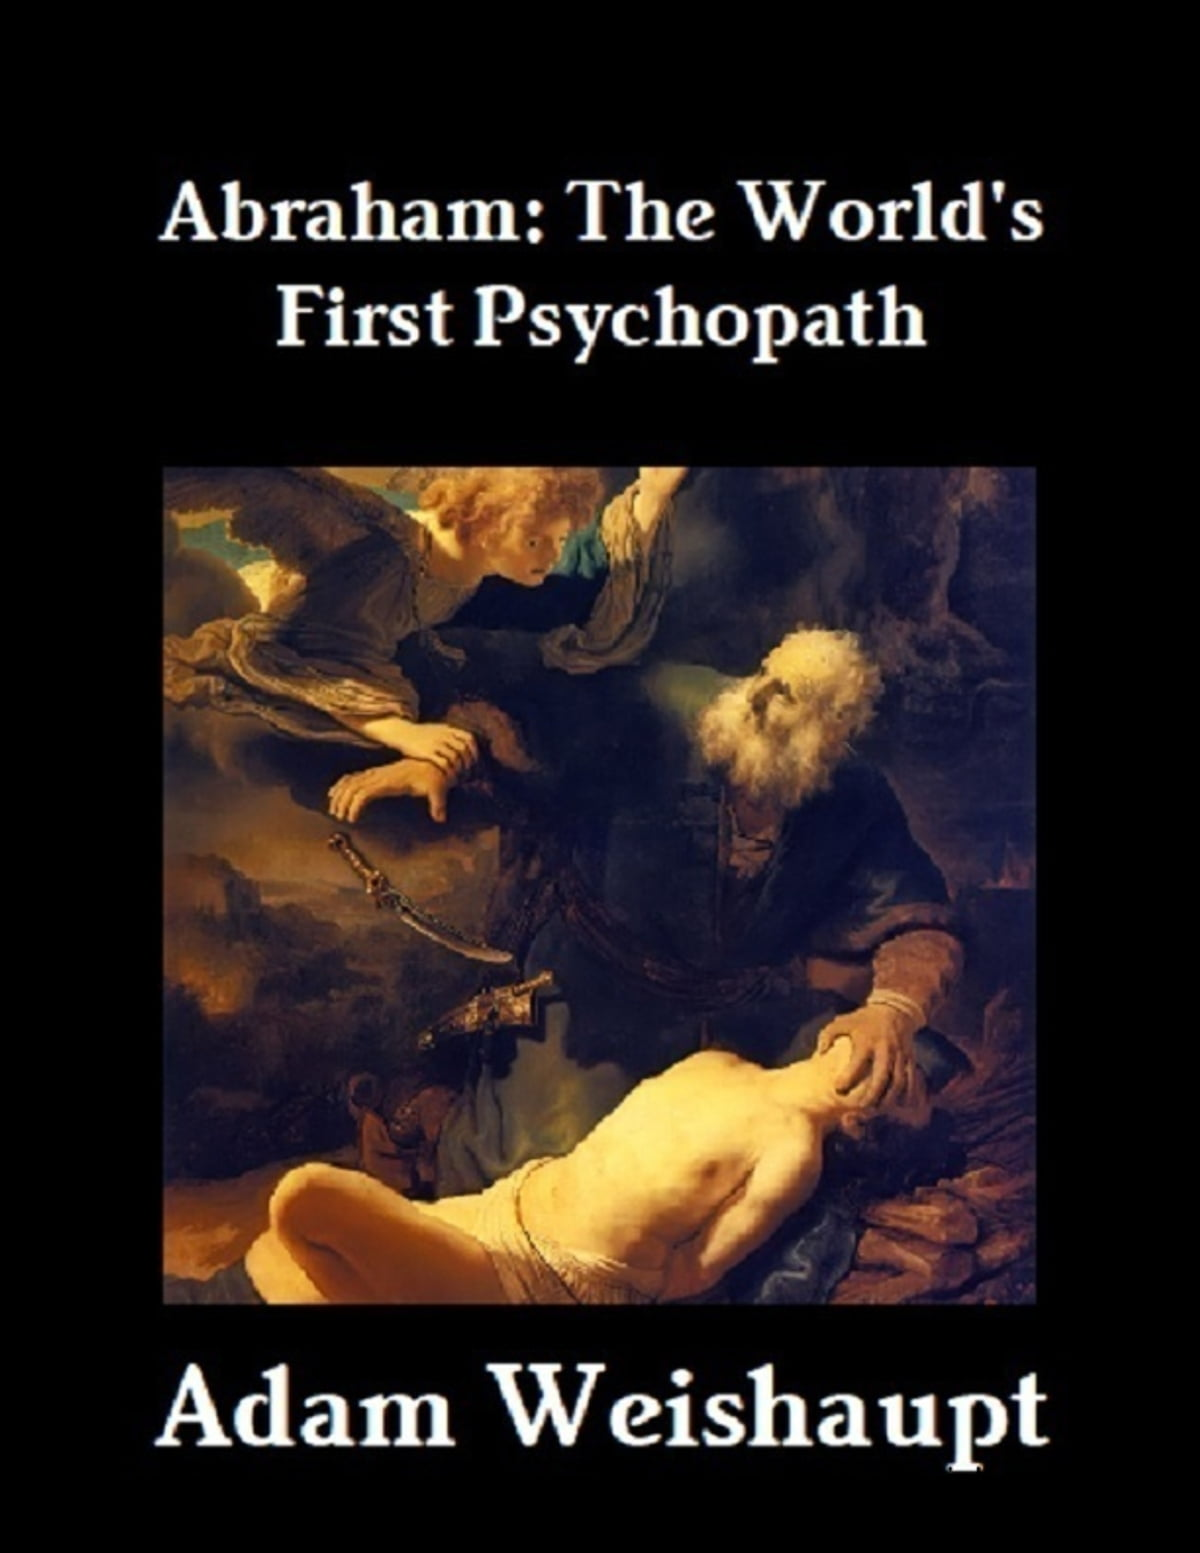 Abraham: The World's First Psychopath ebook by Adam Weishaupt - Rakuten Kobo